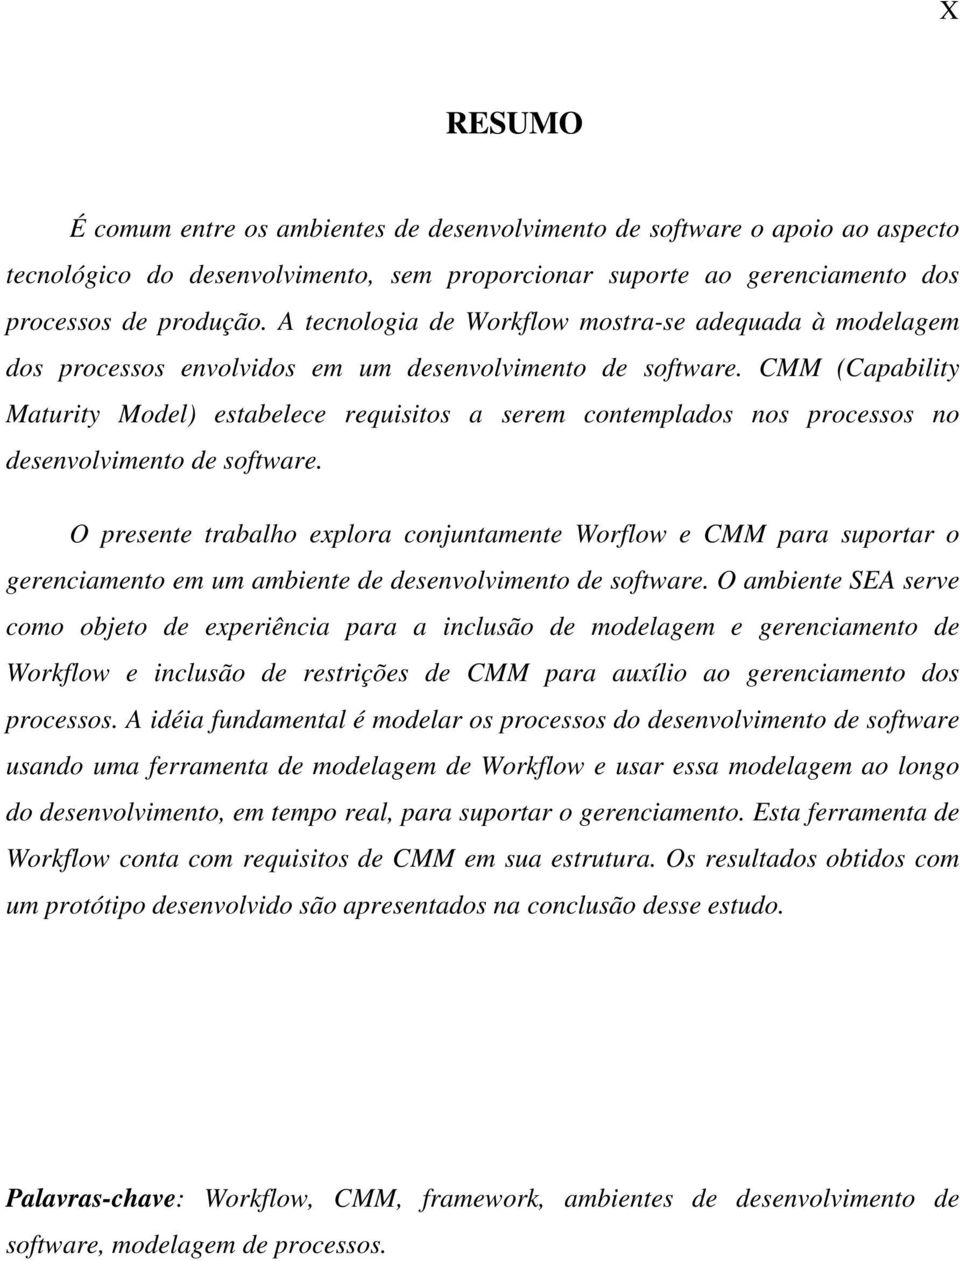 CMM (Capability Maturity Model) estabelece requisitos a serem contemplados nos processos no desenvolvimento de software.